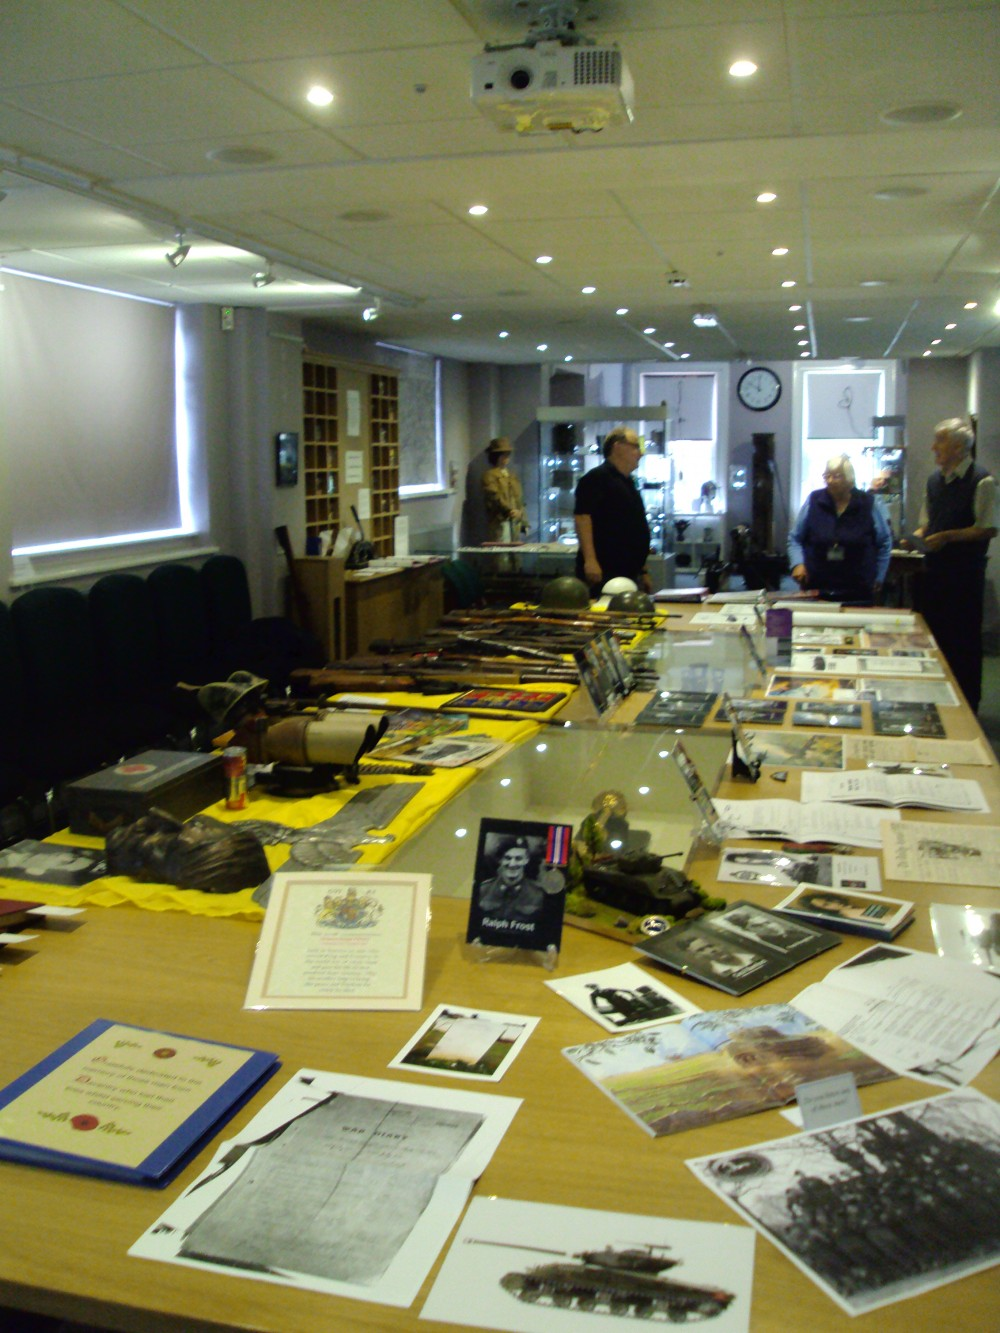 Gerry Thompson's vast research (on the right of table)